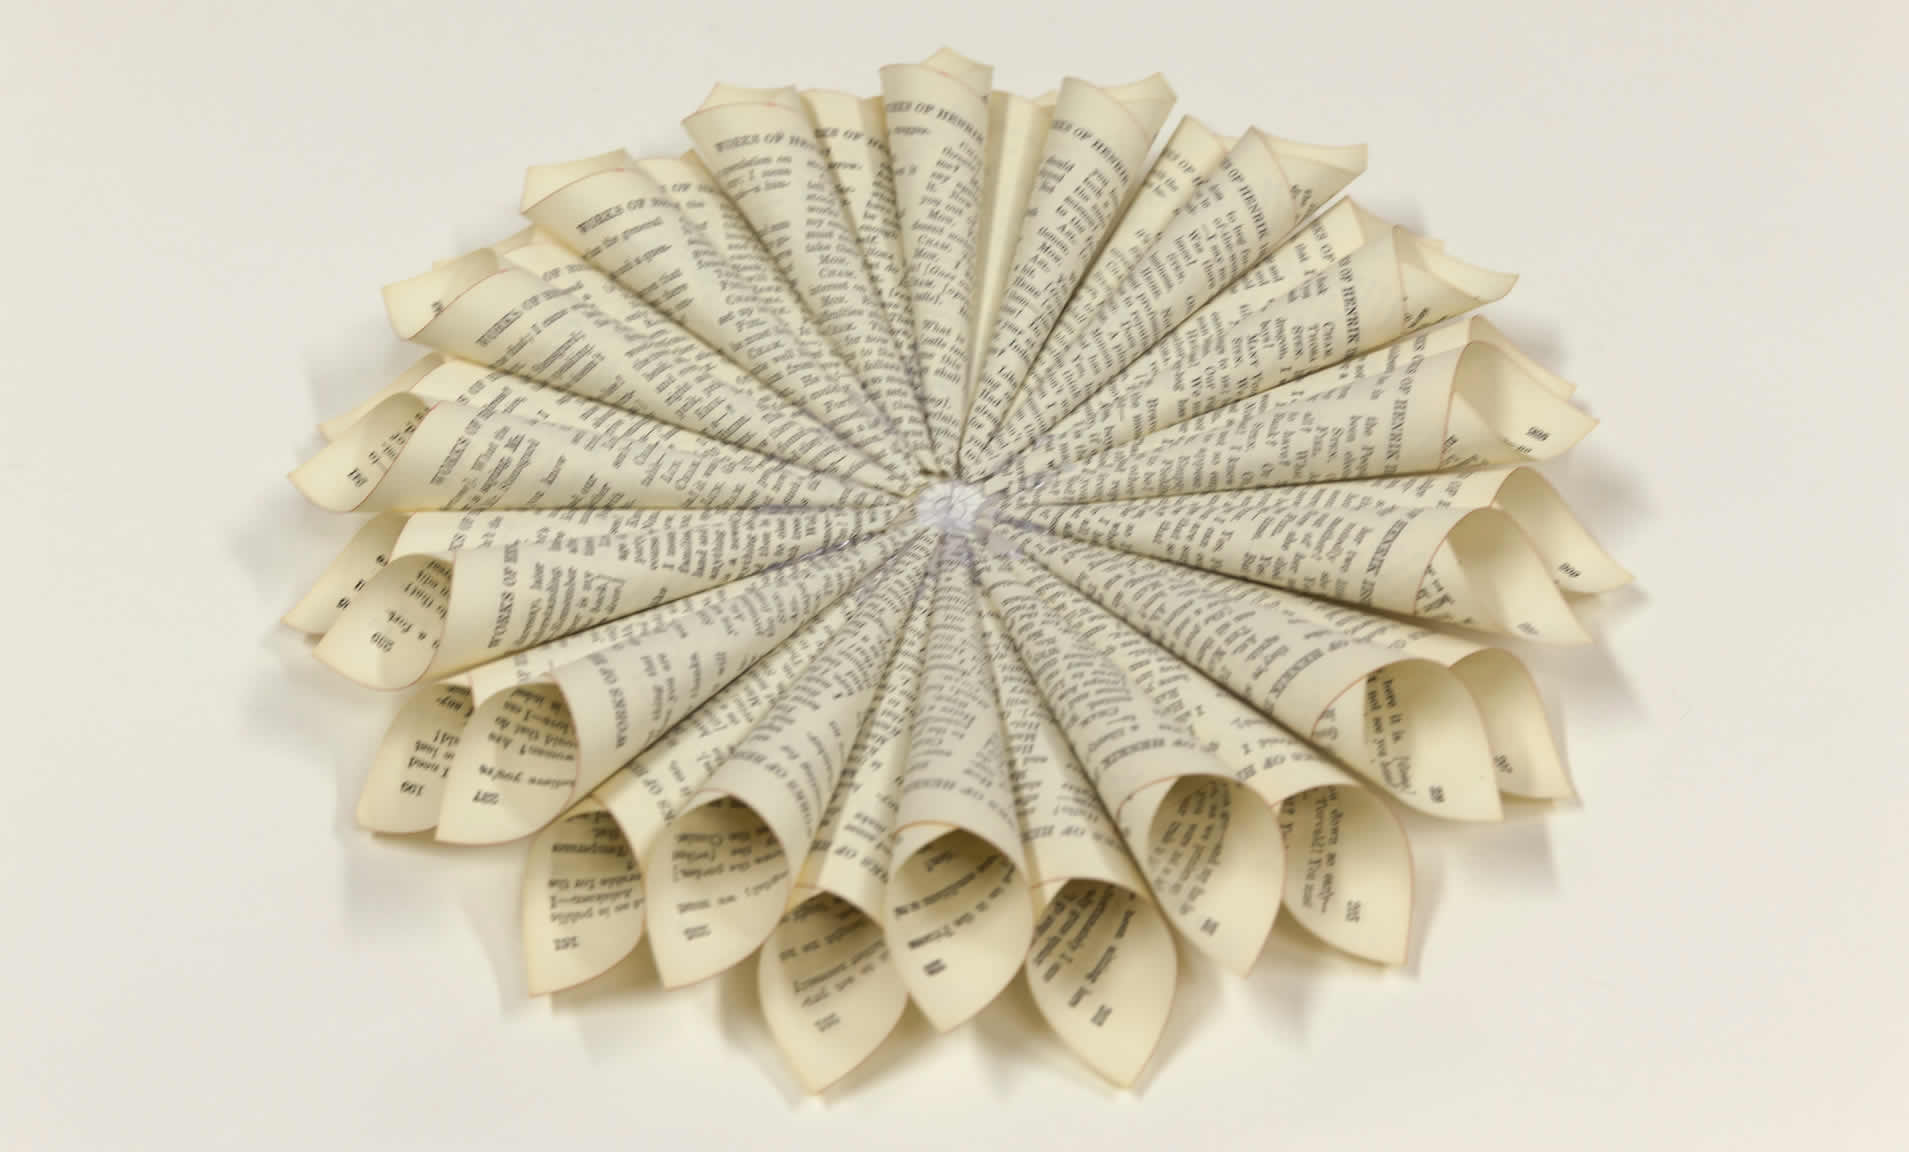 Repurpose an old book into a book page wreath